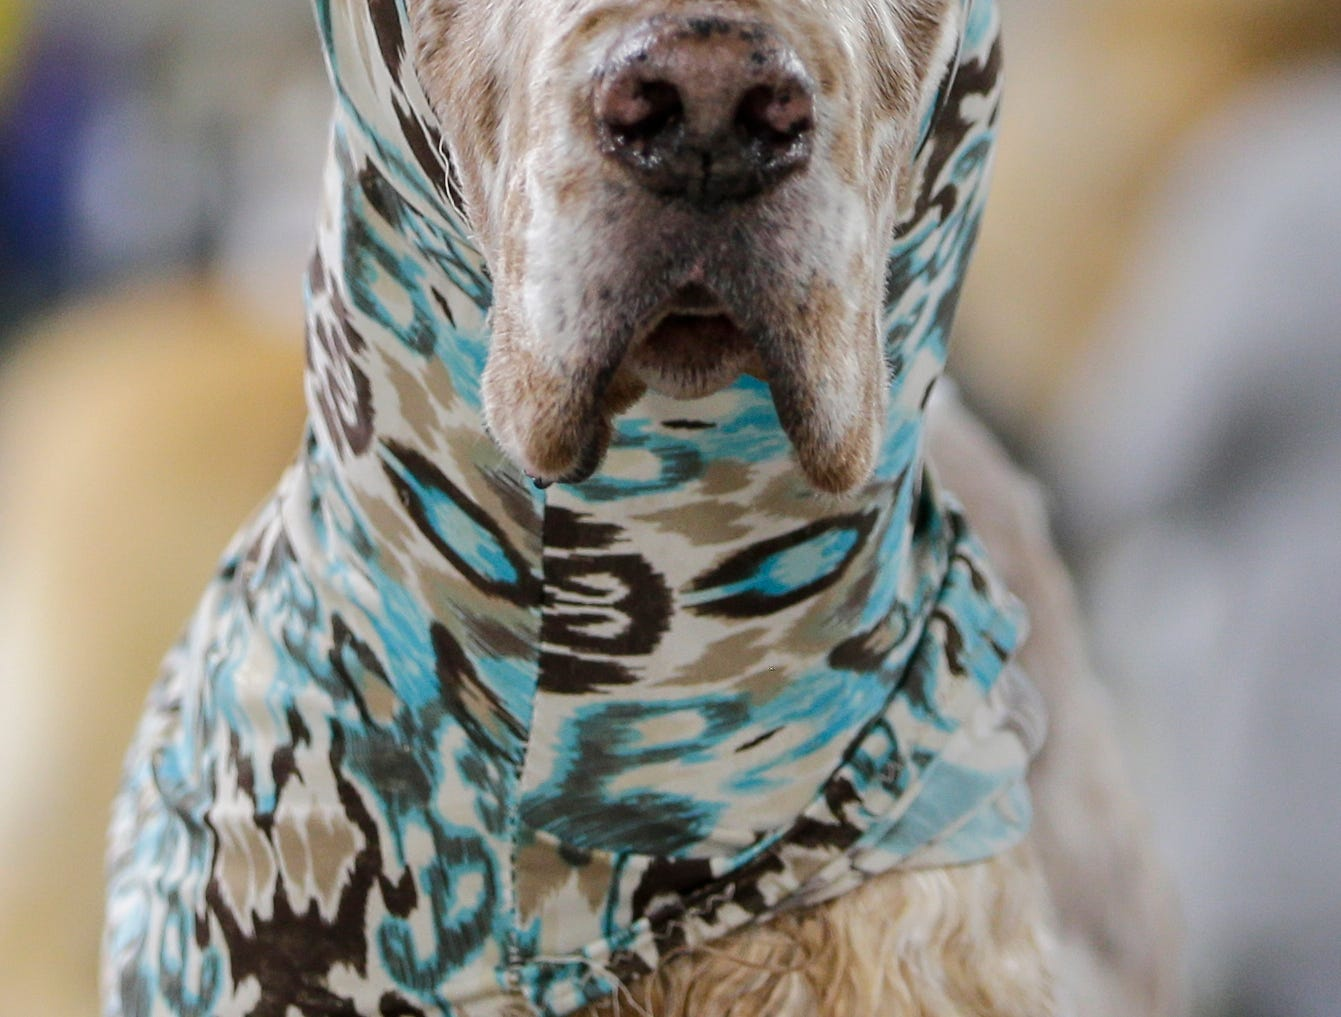 An English setter named Austin belonging to Abigail Anderson, of Bailey, Colo., wears an ear wrap as he's groomed before his showing in the Northeast Wisconsin Dog Show Classic at the Manitowoc County Expo Center Thursday, March 28, 2019, in Manitowoc, Wis. Joshua Clark/USA TODAY NETWORK-Wisconsin